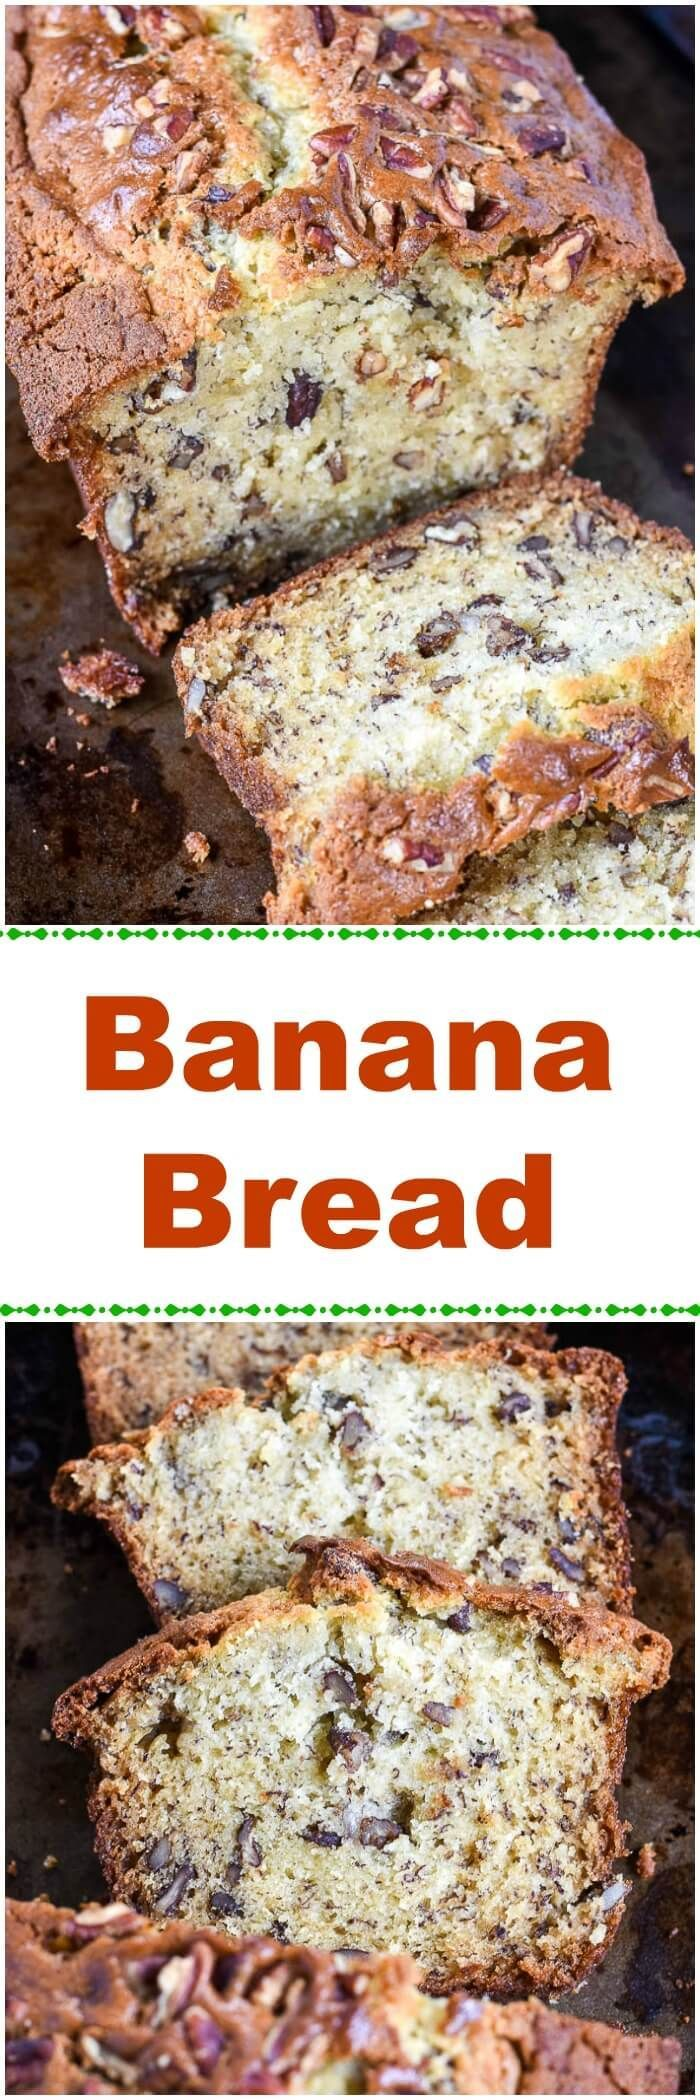 This Super Moist Banana Bread Recipe Makes The Best Banana Bread You Will Ever Try The Sour Cre Moist Banana Bread Banana Bread Recipe Moist Best Banana Bread